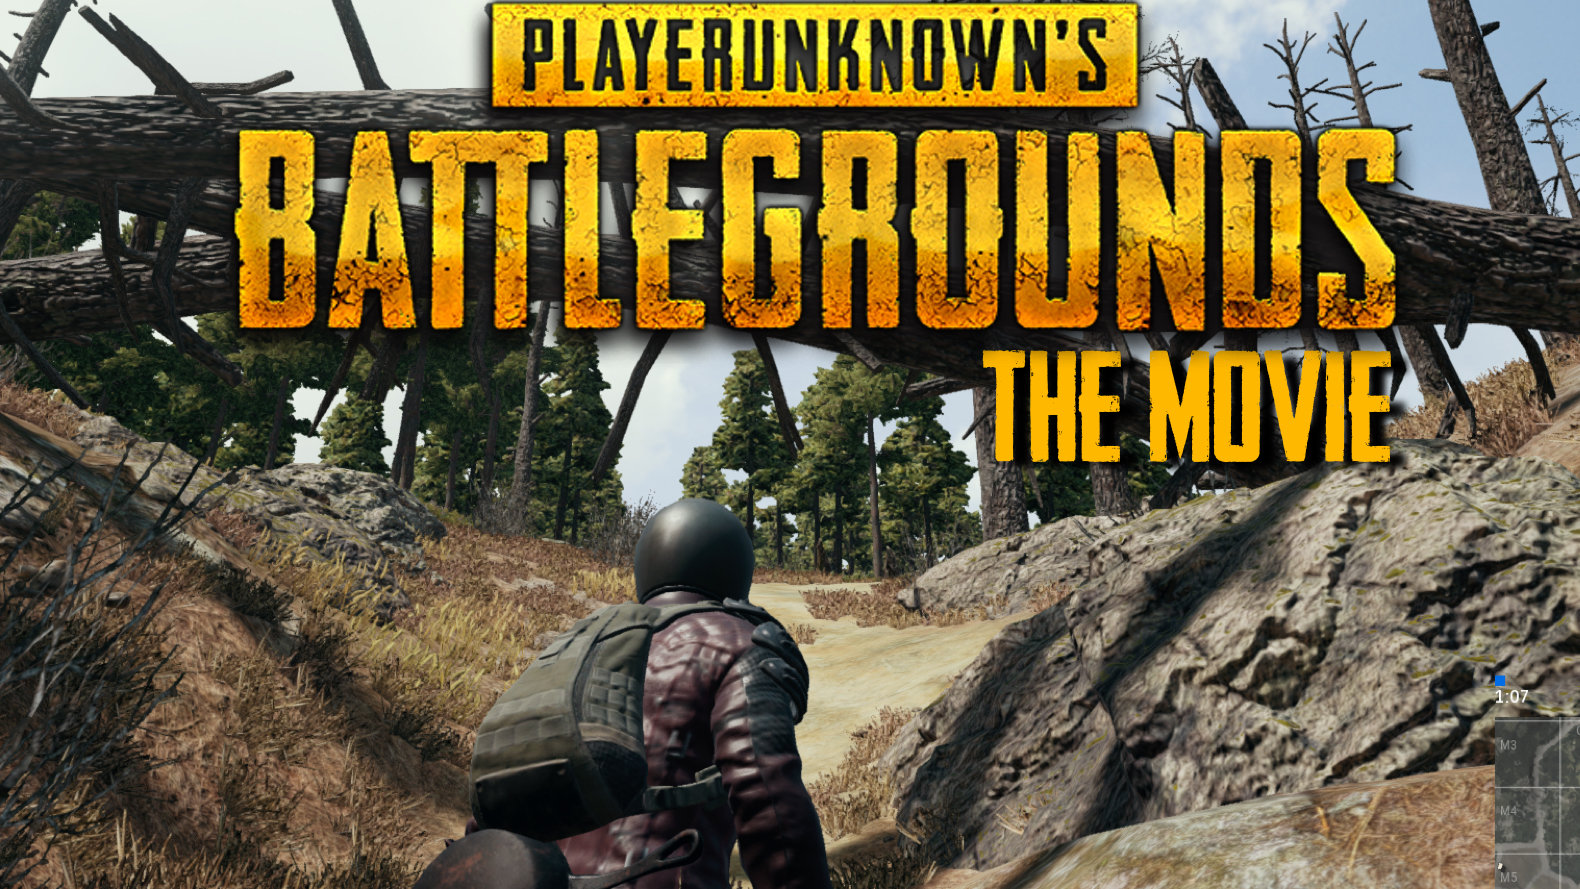 Petition · PlayerUnknown's Battlegrounds The Movie · Change org